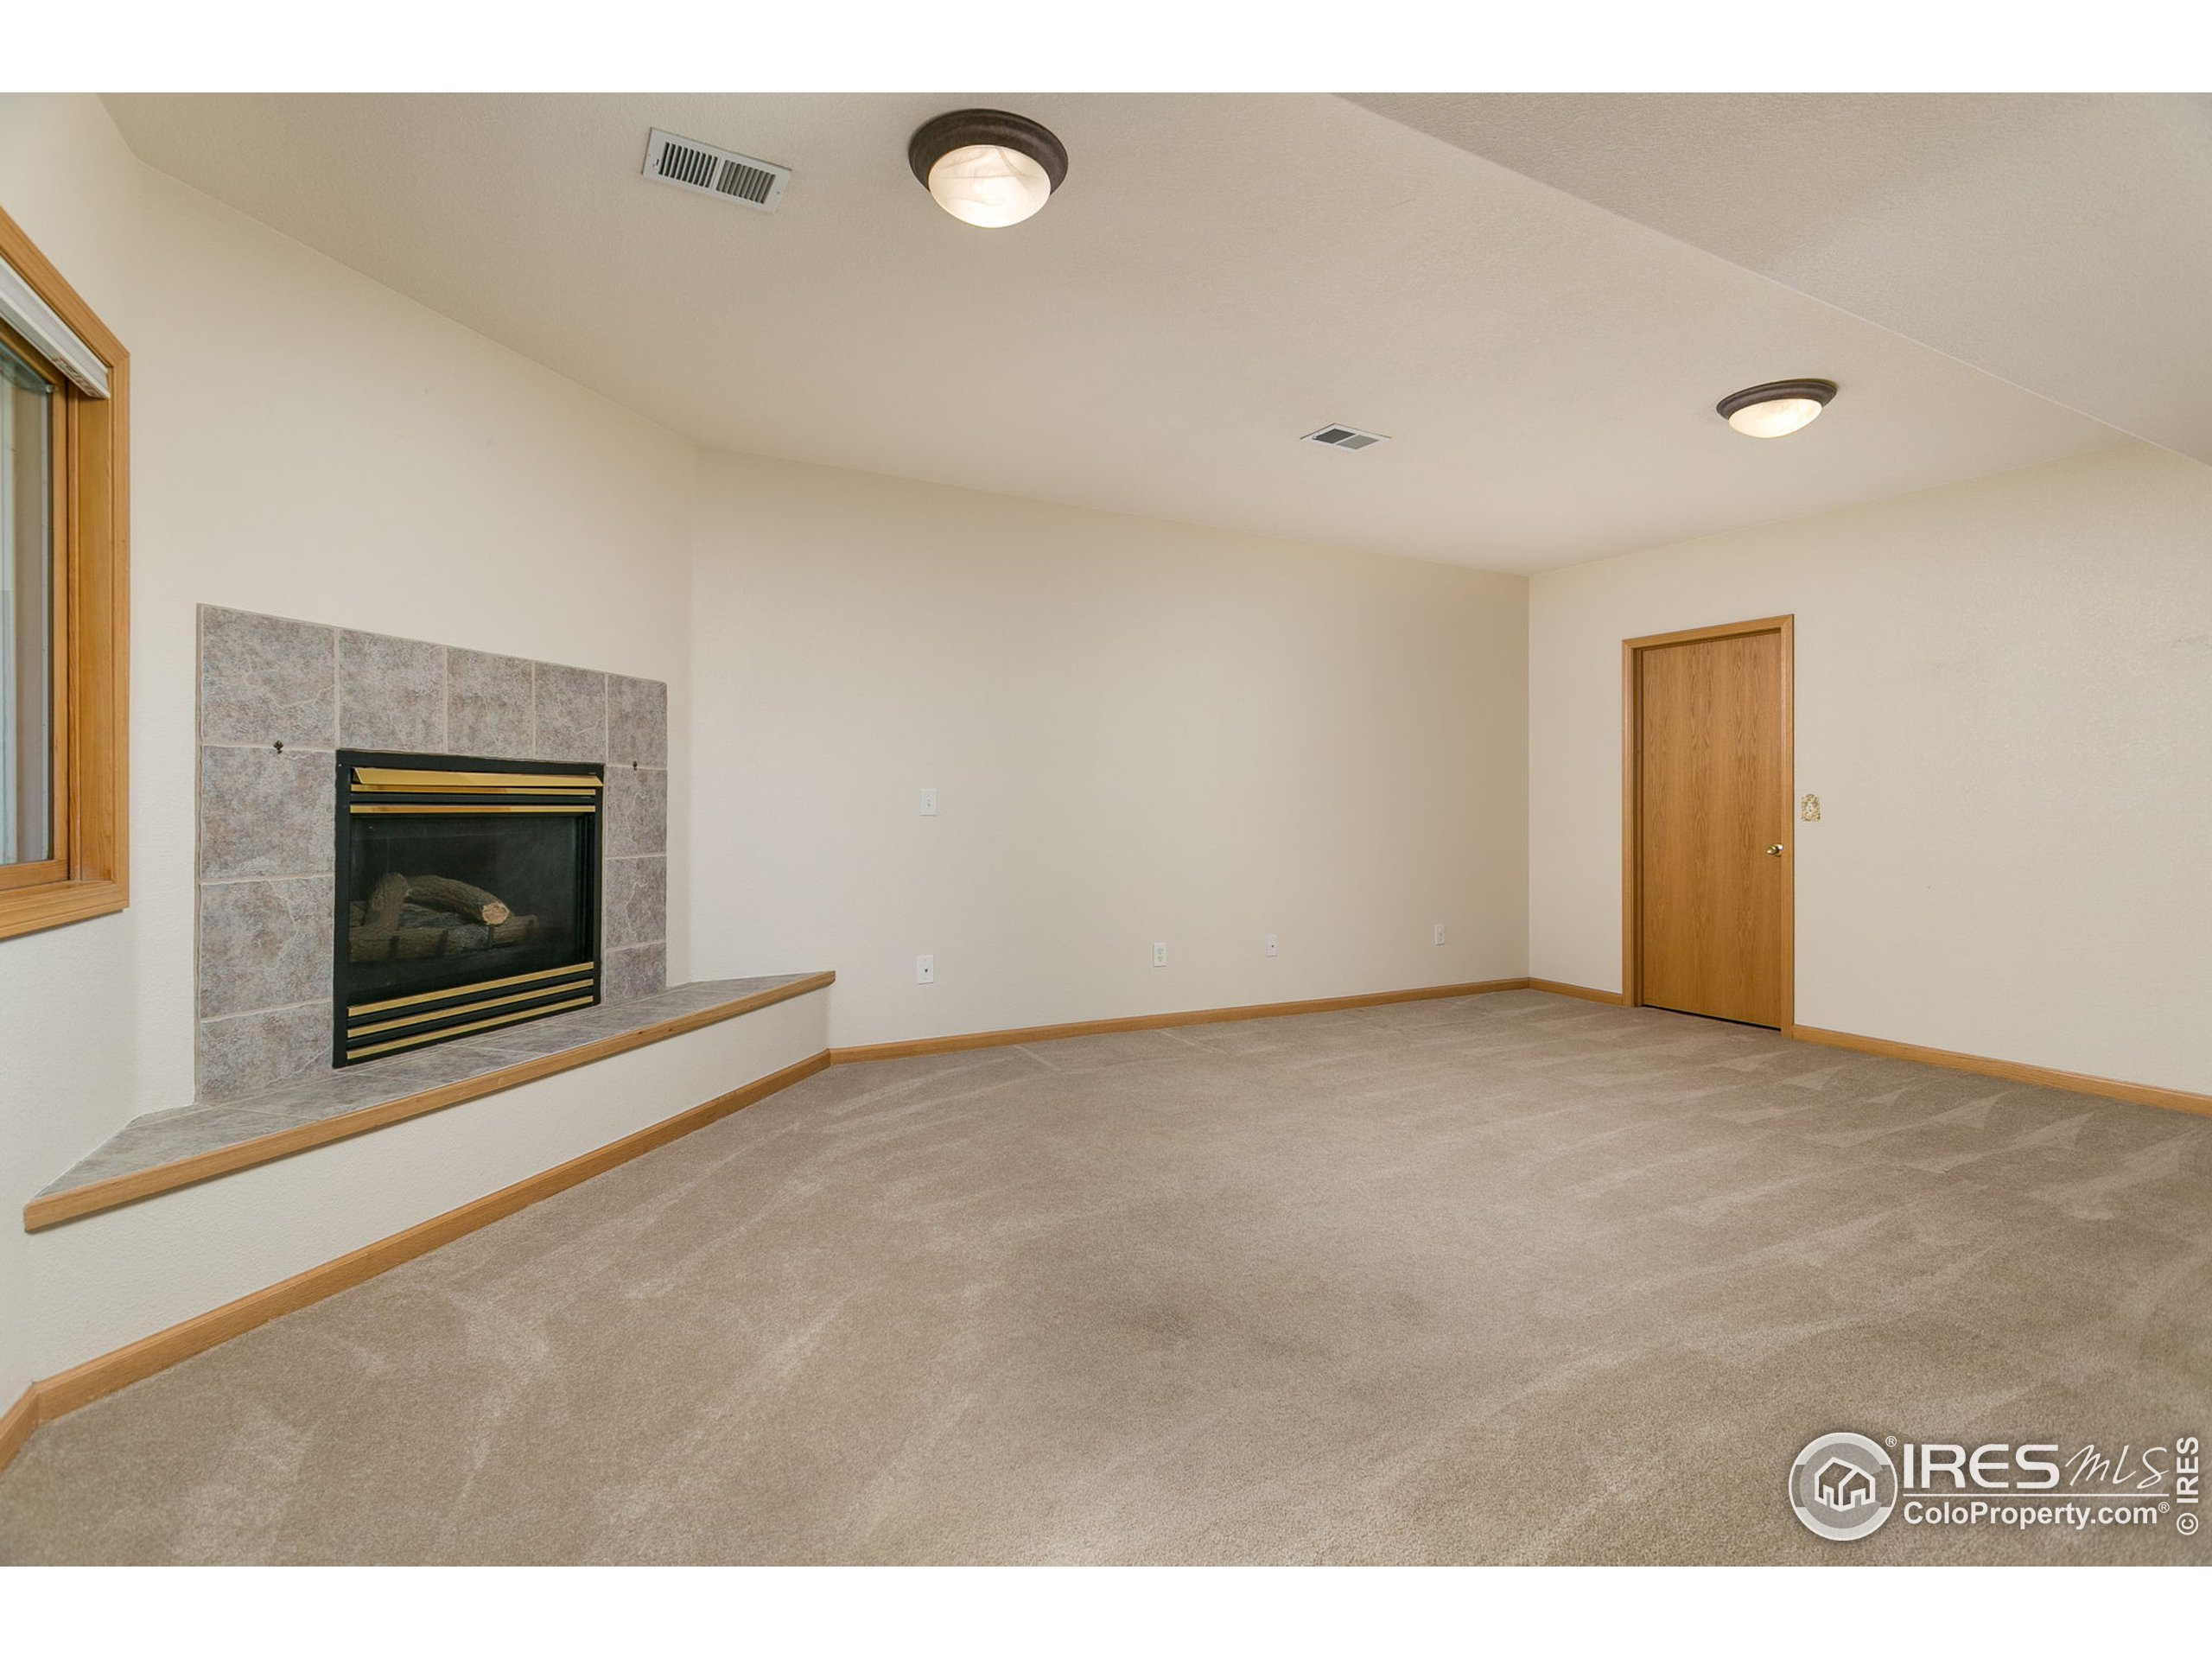 Great room in basement with gas fireplace